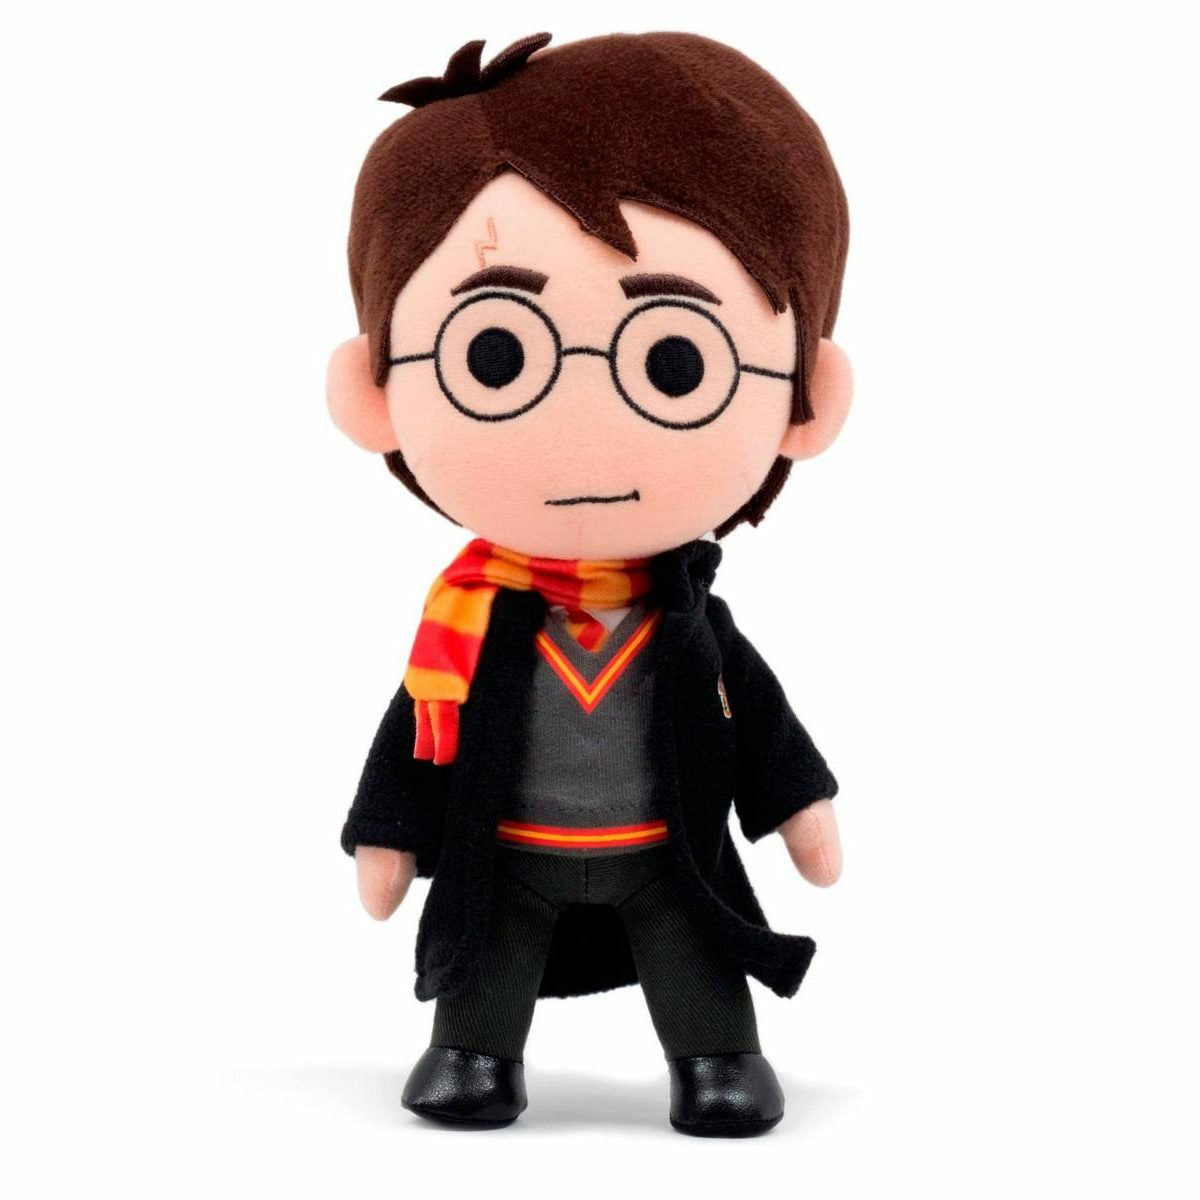 Harry Potter Q-Pal Plush Toy